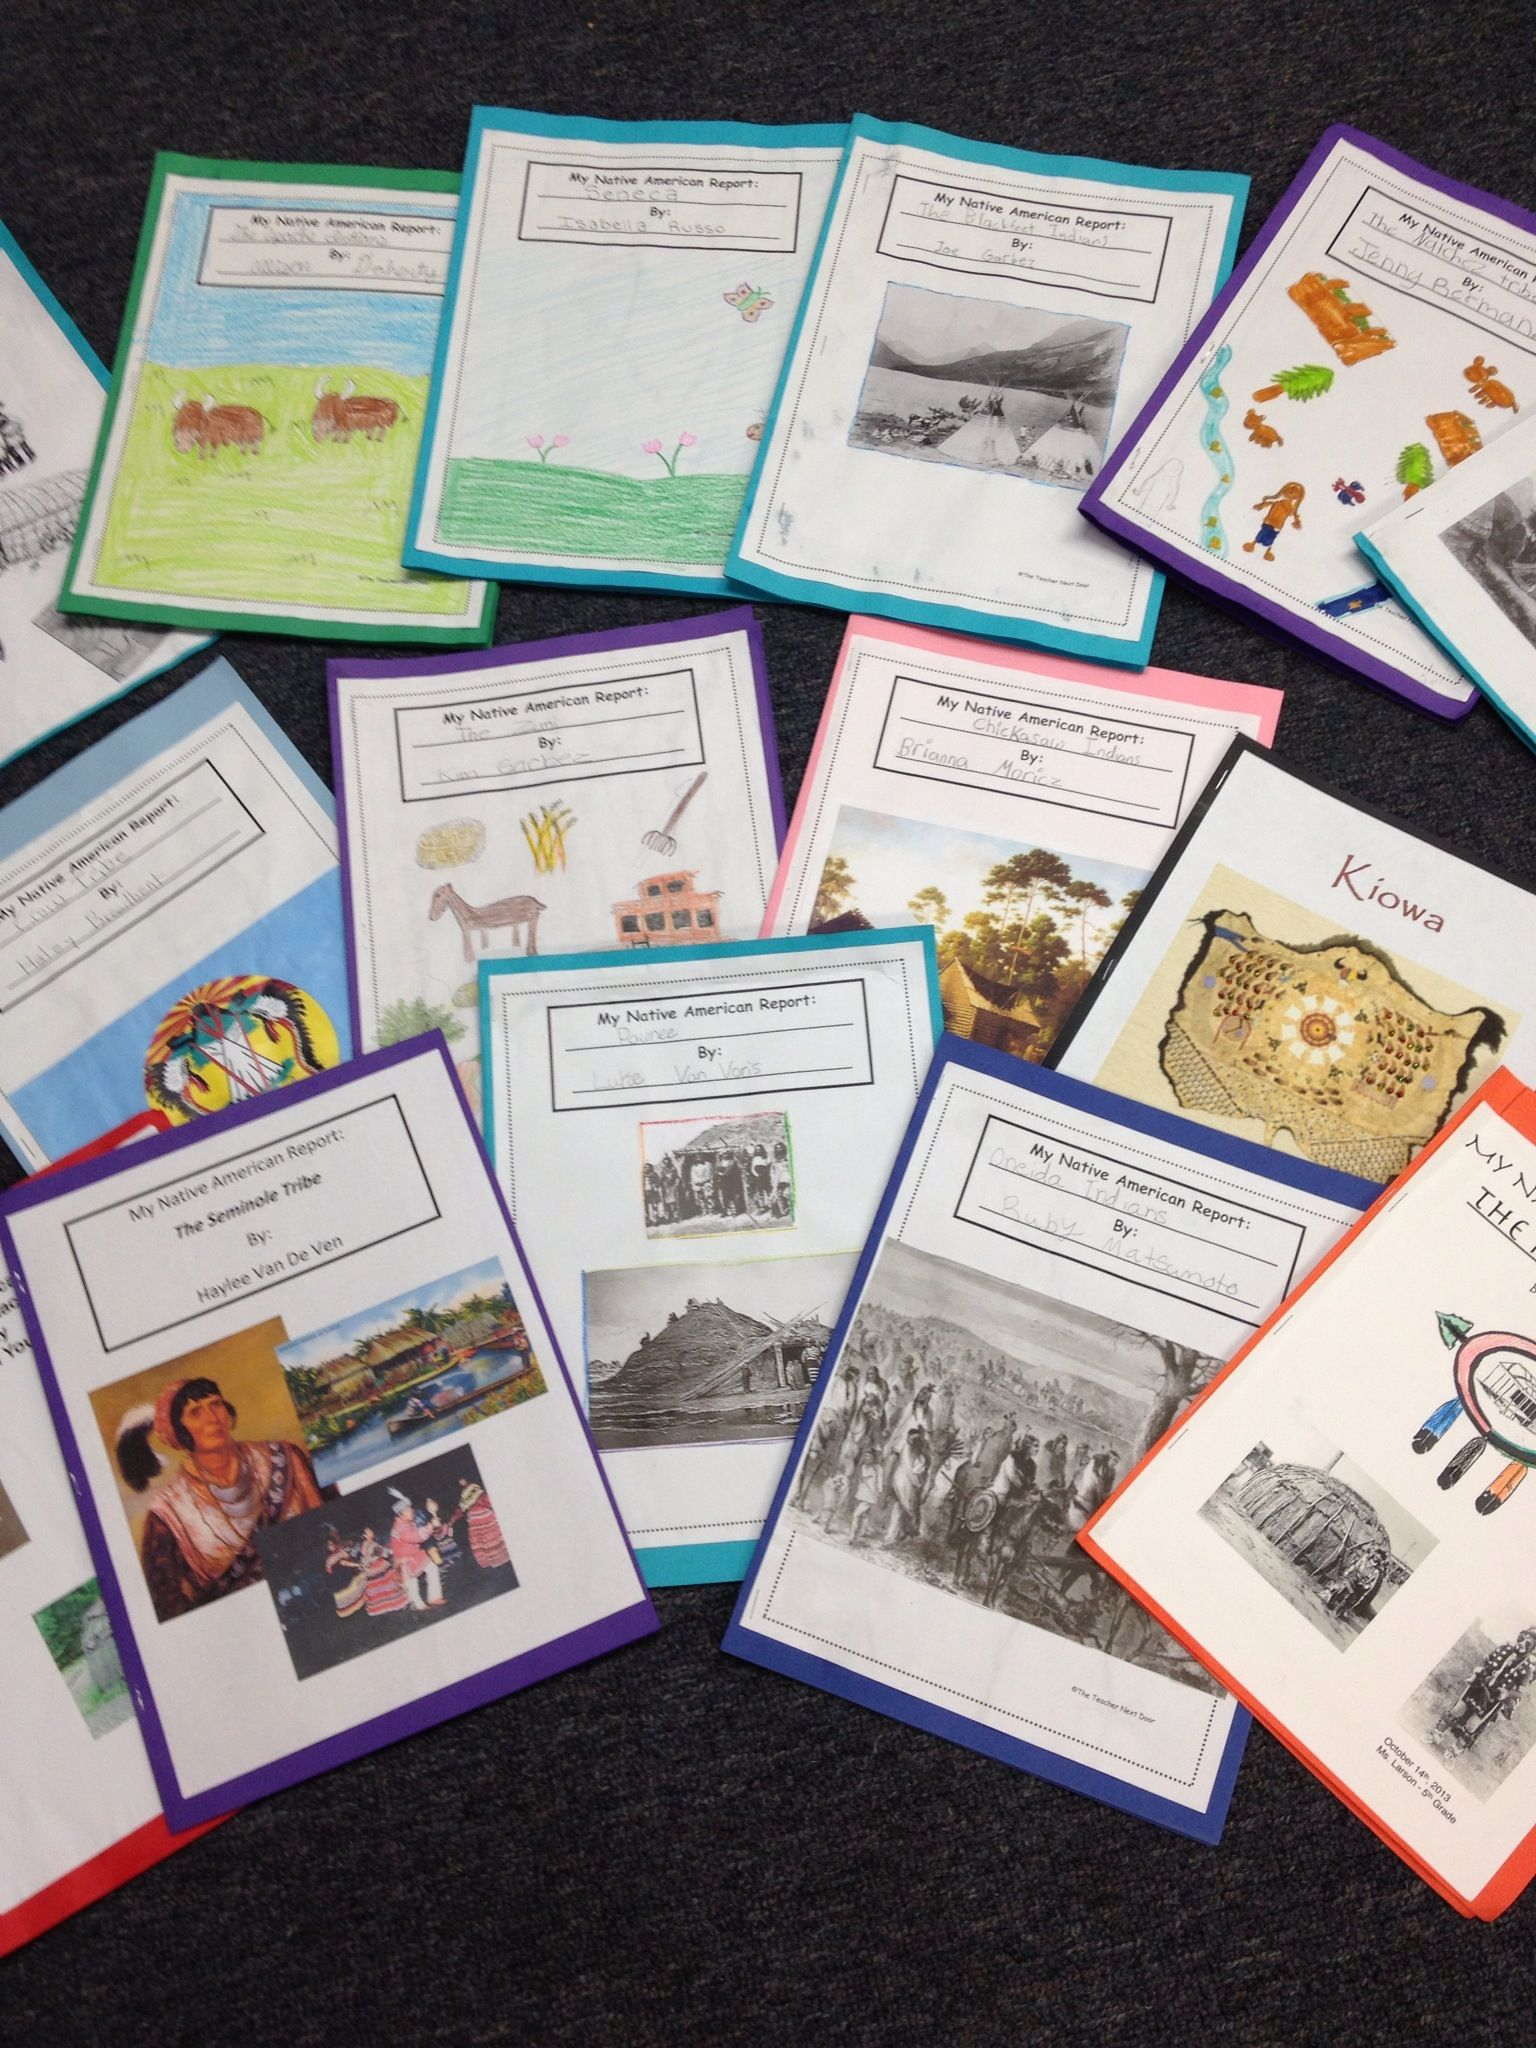 Here Are Some Of The Finished Native American Research